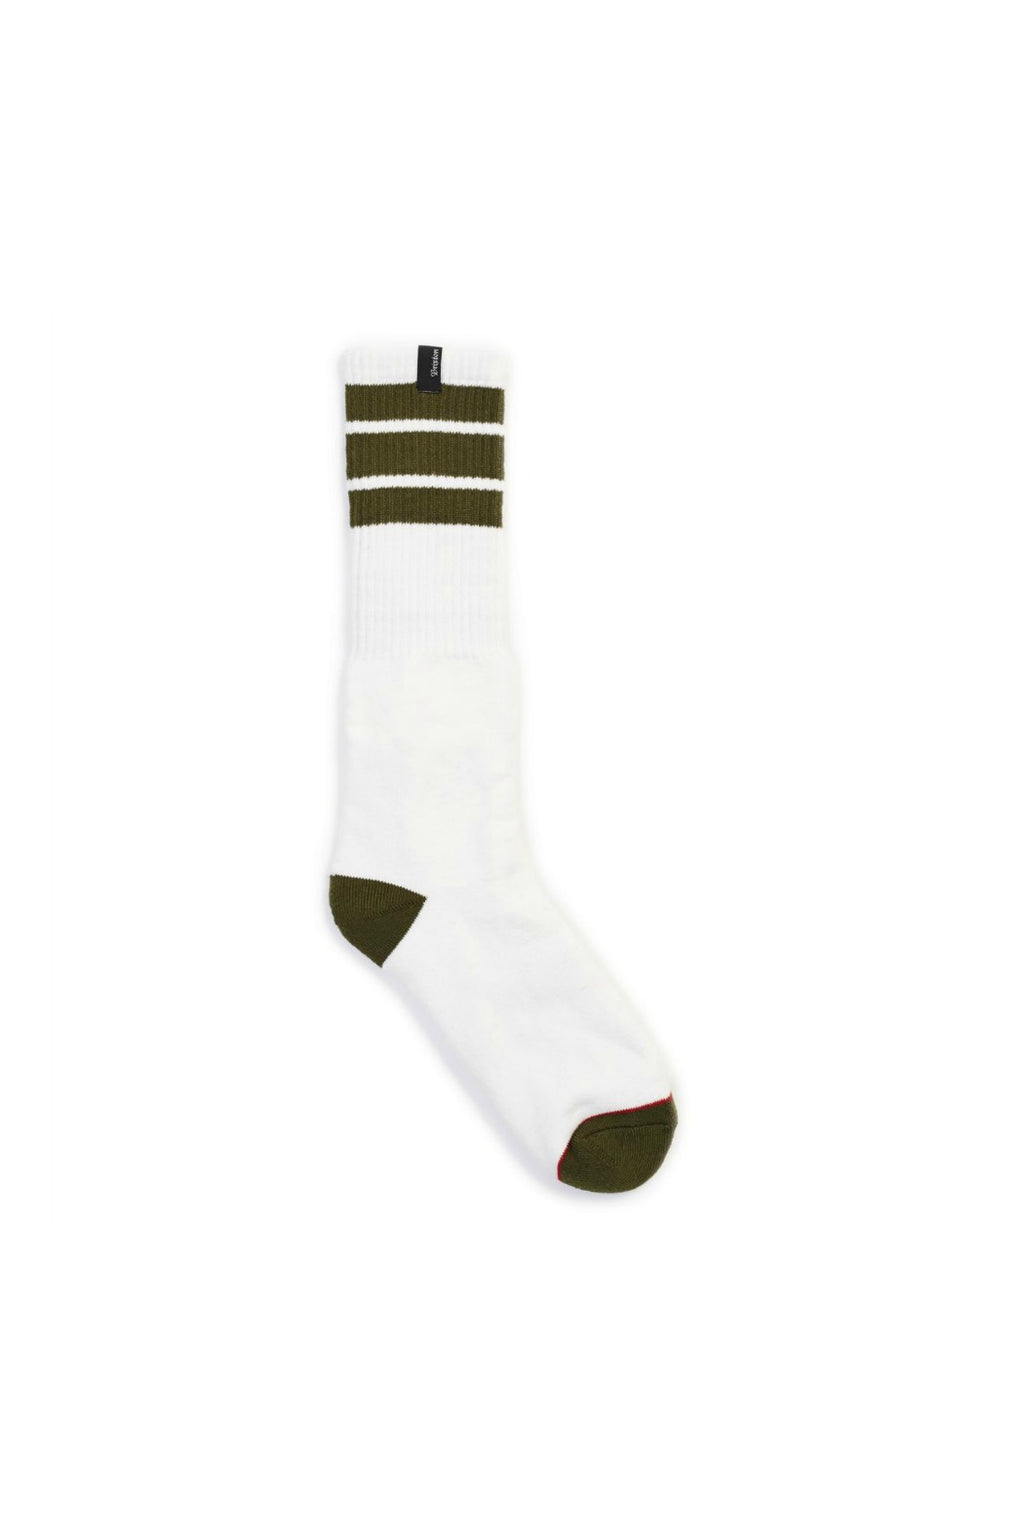 Brixton Alameda Socks in White and Olive